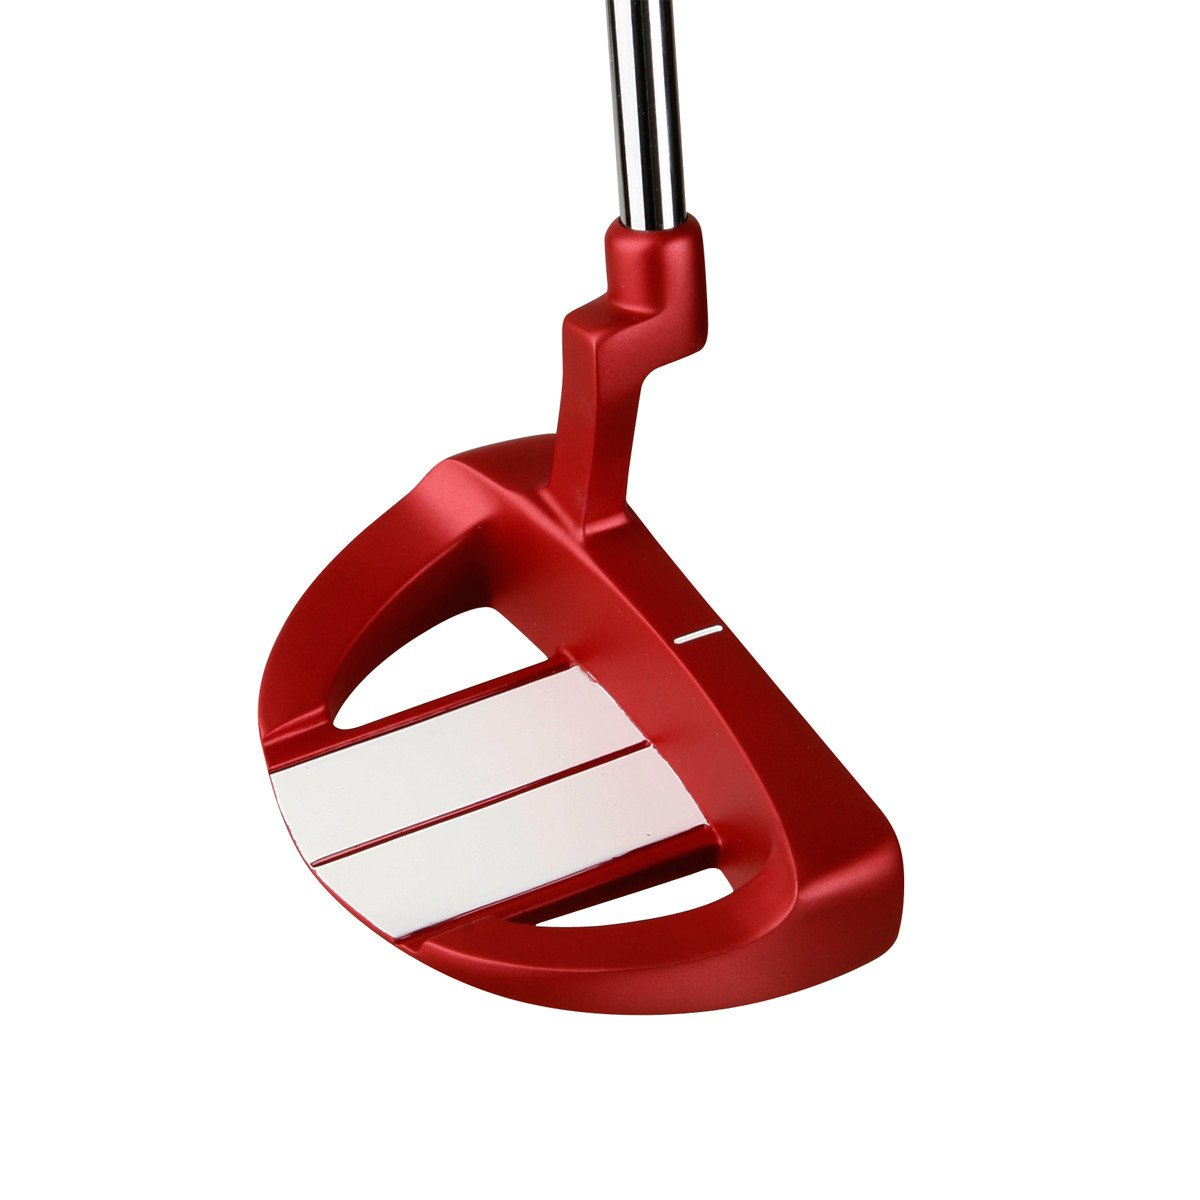 Orlimar Tangent T1 Putter Mens Right Hand with Free Headcover